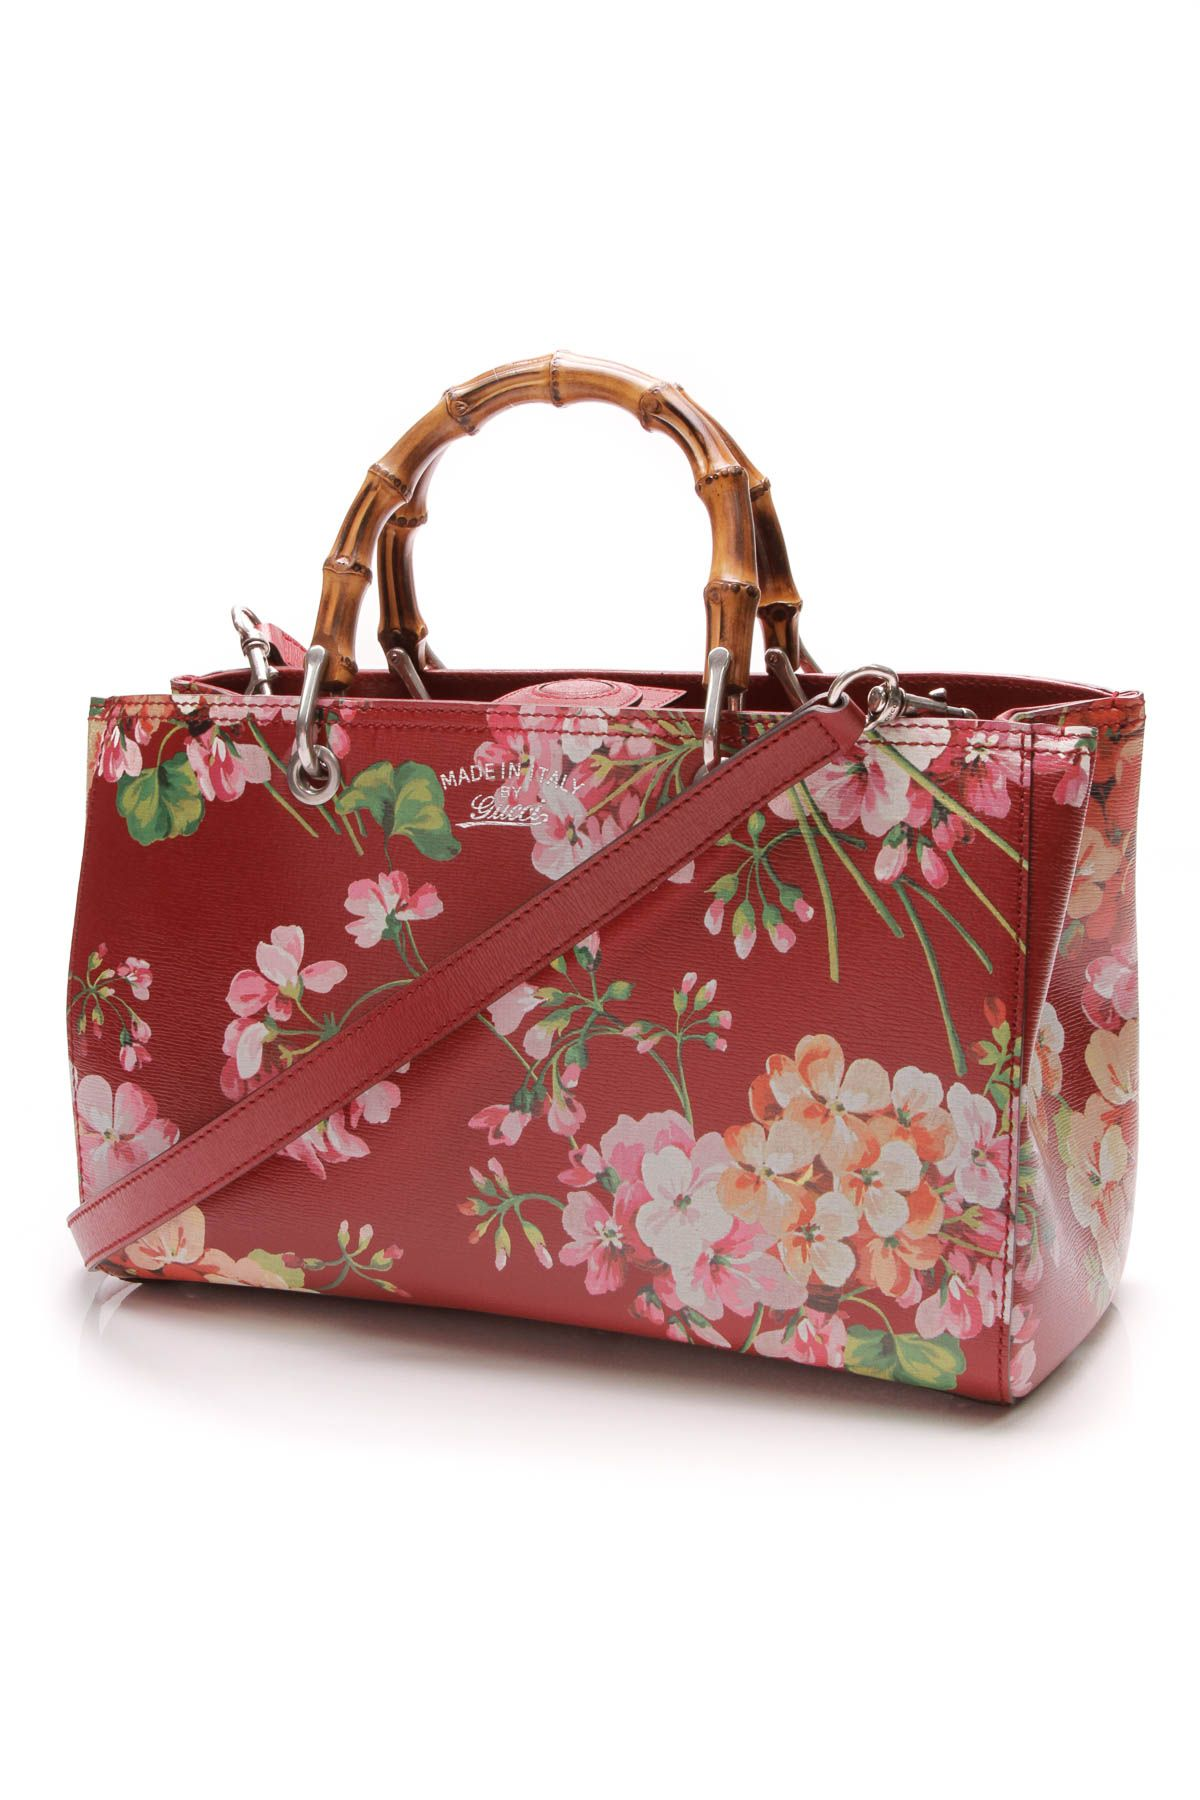 190ee9e3badc4a Ready for spring? This Gucci red blooms tote is a must have ...